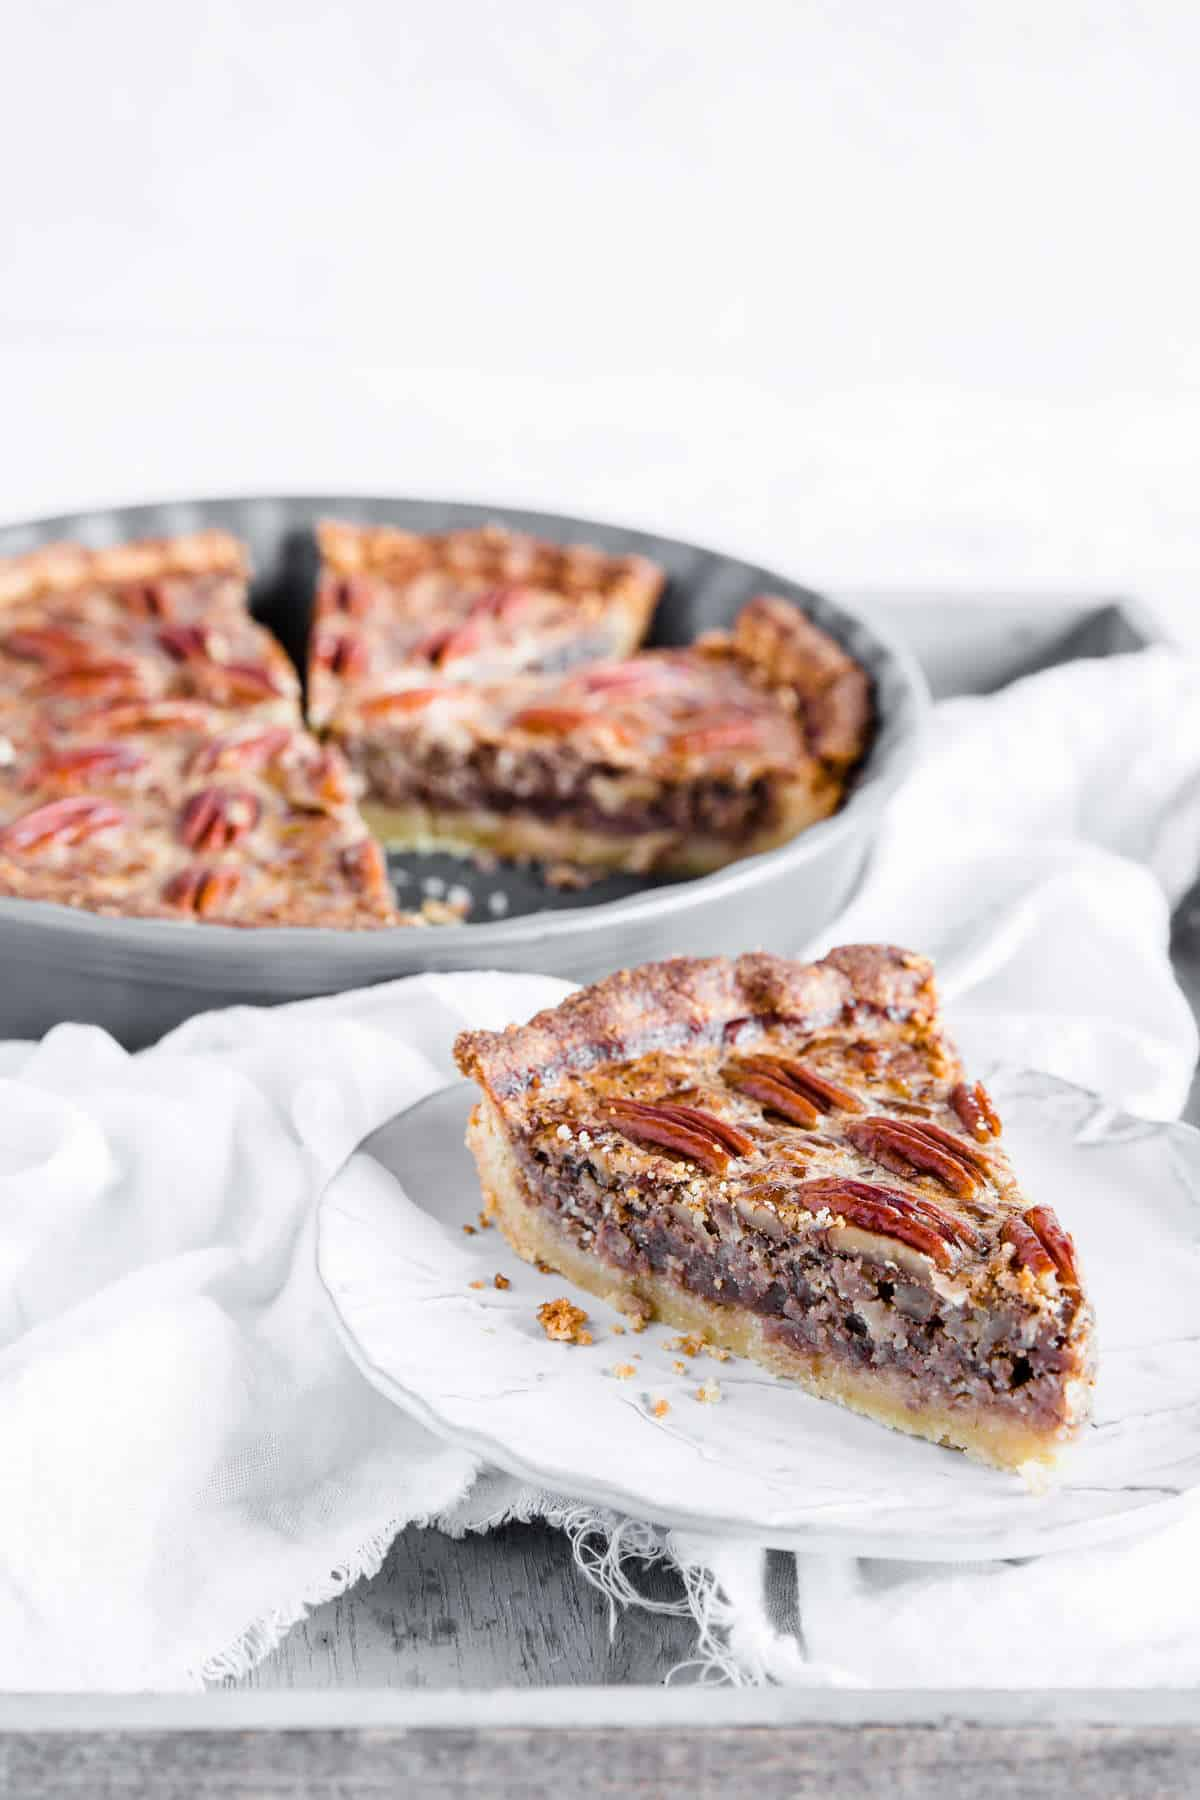 slice of low carb pecan pie with the whole pie in the background